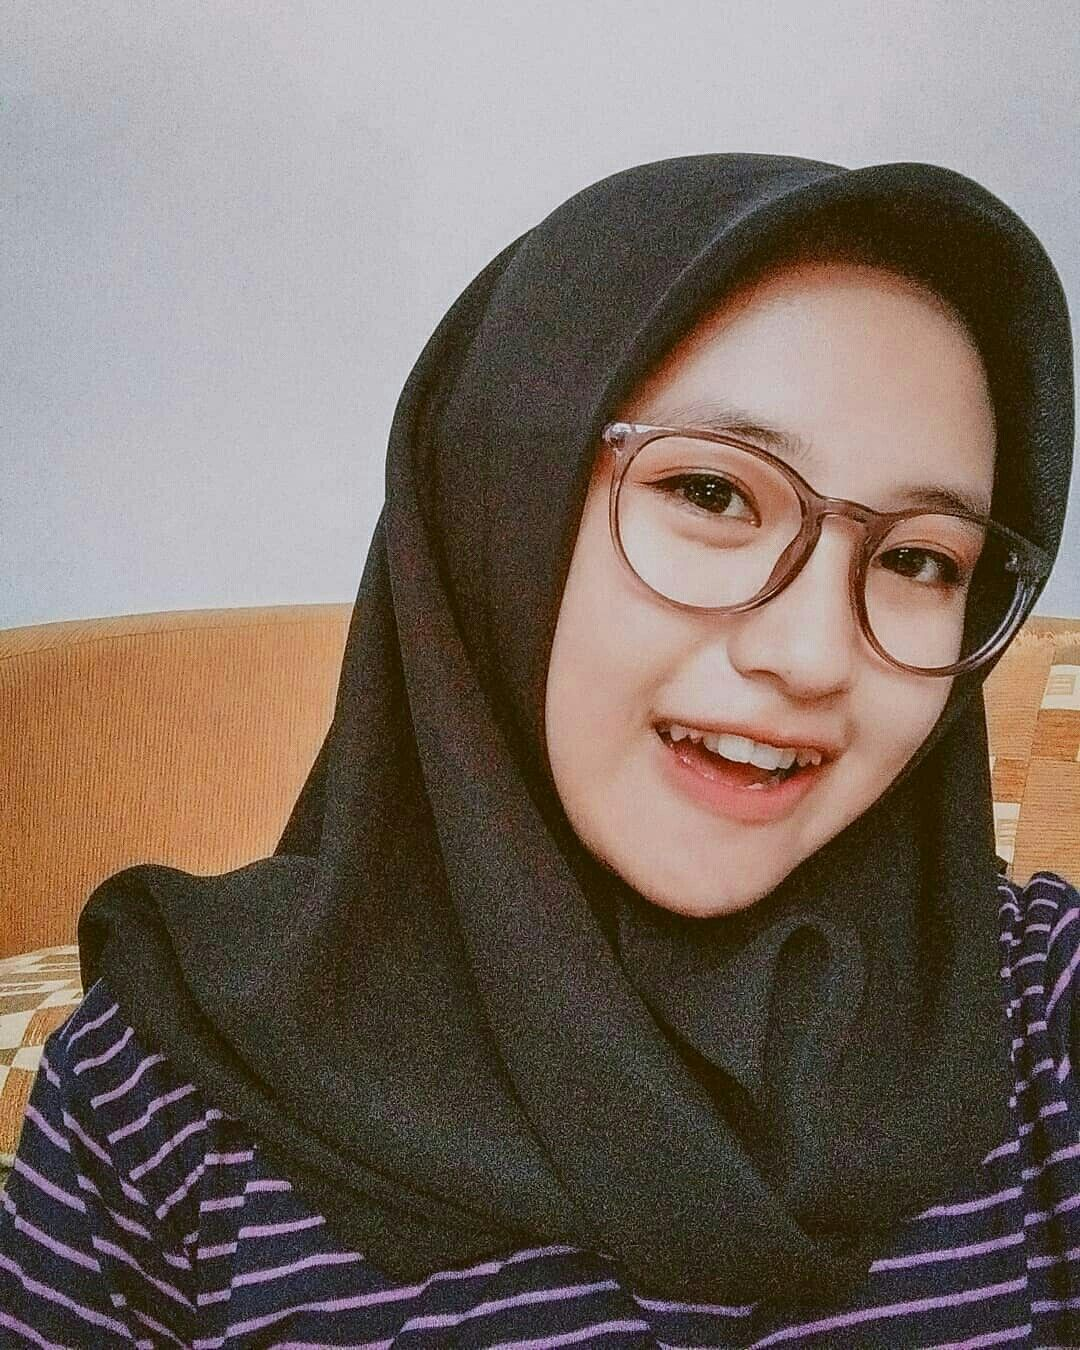 Pin by Dede mbul on HIJABGIRL in 2020 Car insurance